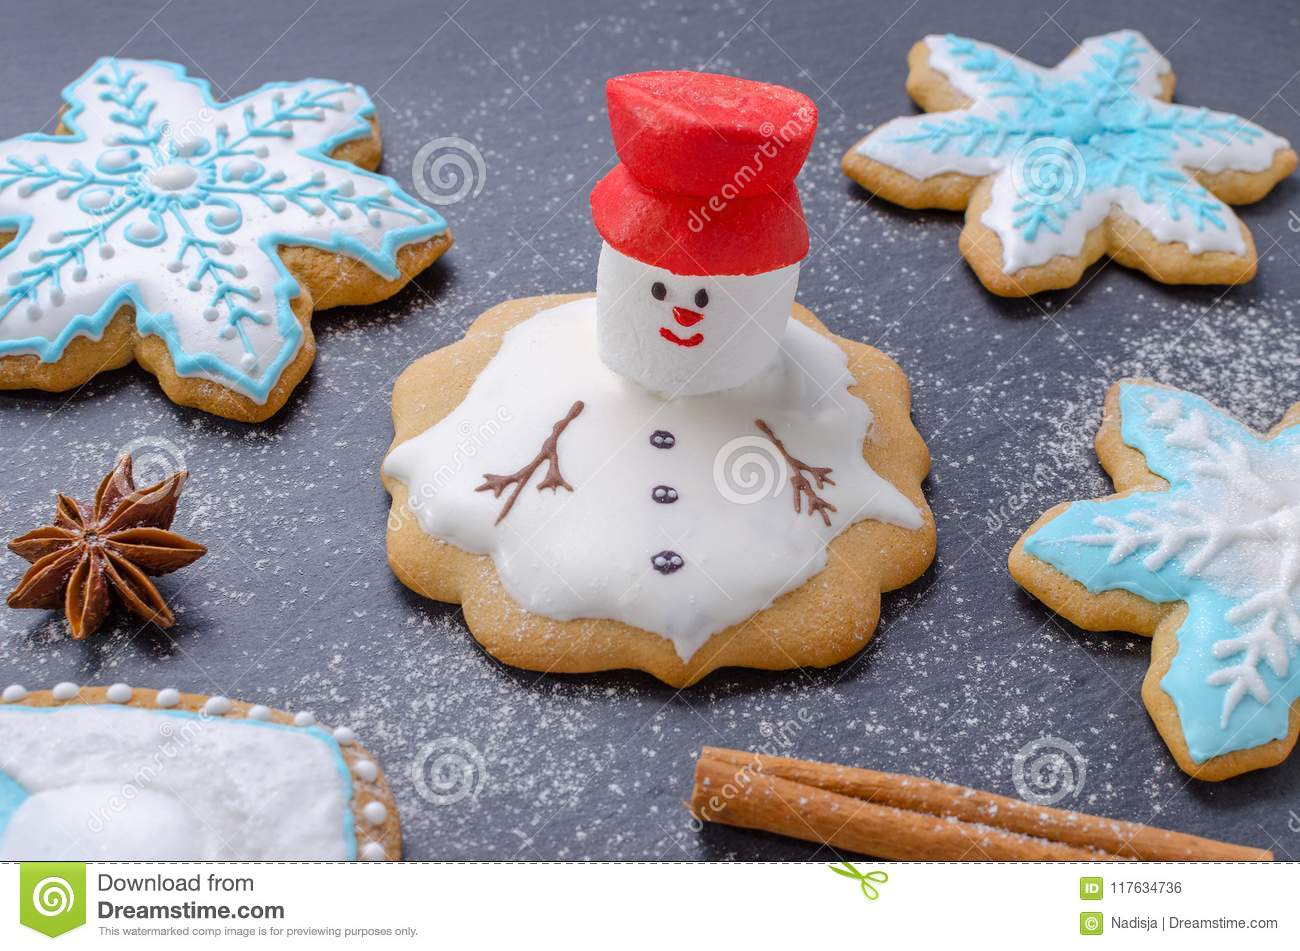 download homemade christmas cookies melted snowman with red hut and snowflake gingerbread stock photo - Homemade Christmas Cookies